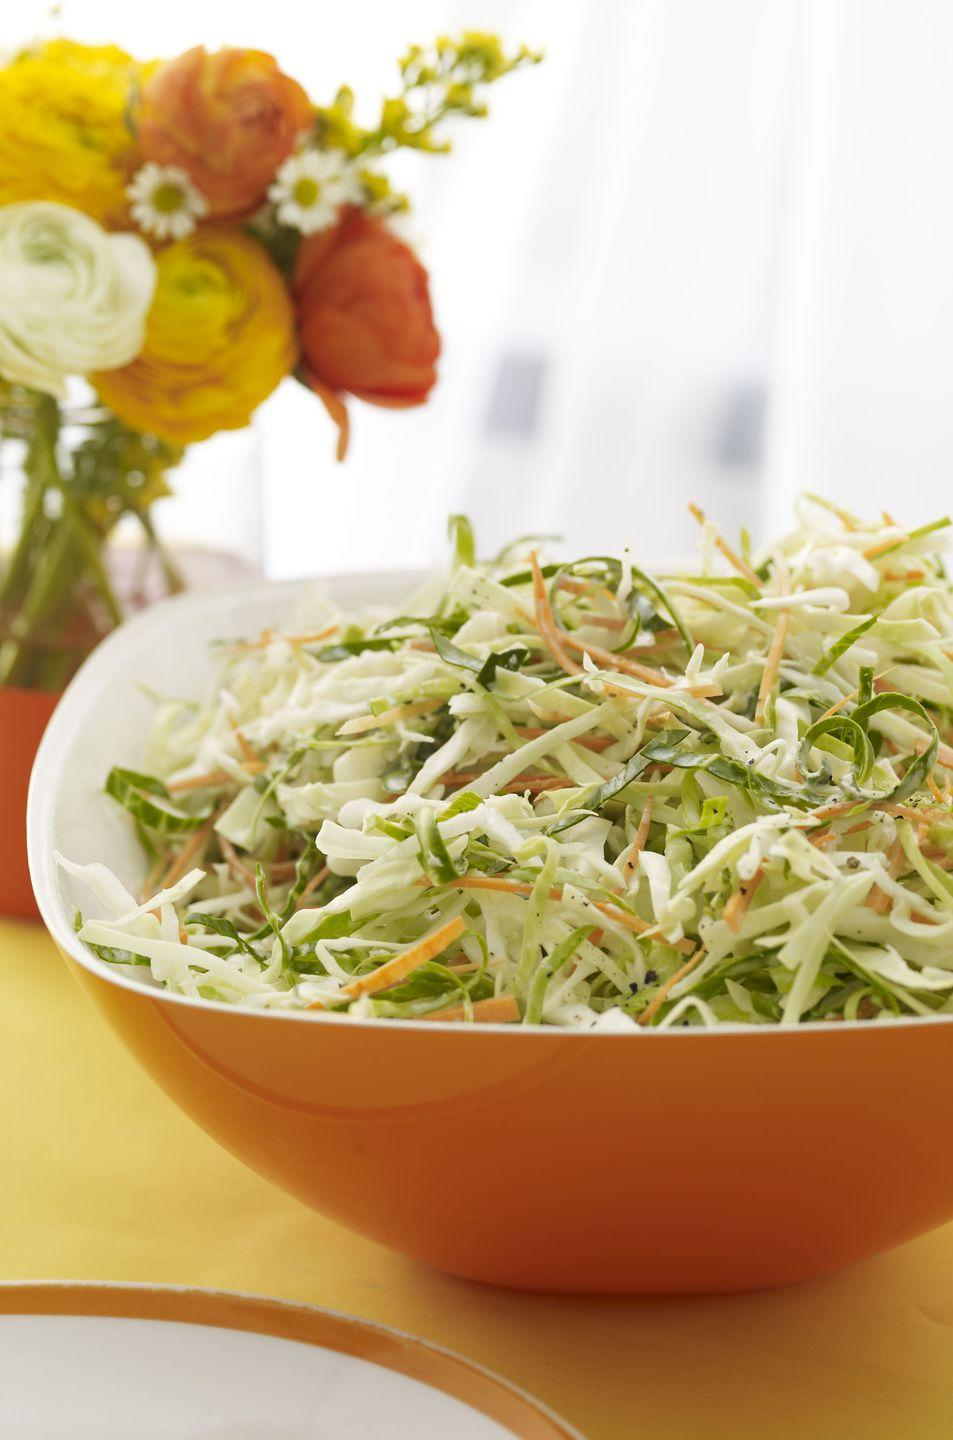 "<p>You can refrigerate this recipe up to one day before eating. (But don't forget to mix it up before serving!)</p><p><strong><a href=""https://www.womansday.com/food-recipes/food-drinks/recipes/a12165/creamy-horseradish-cabbage-carrot-slaw-recipe-wdy0712/"" rel=""nofollow noopener"" target=""_blank"" data-ylk=""slk:Get the recipe"" class=""link rapid-noclick-resp"">Get the recipe</a>. </strong></p>"